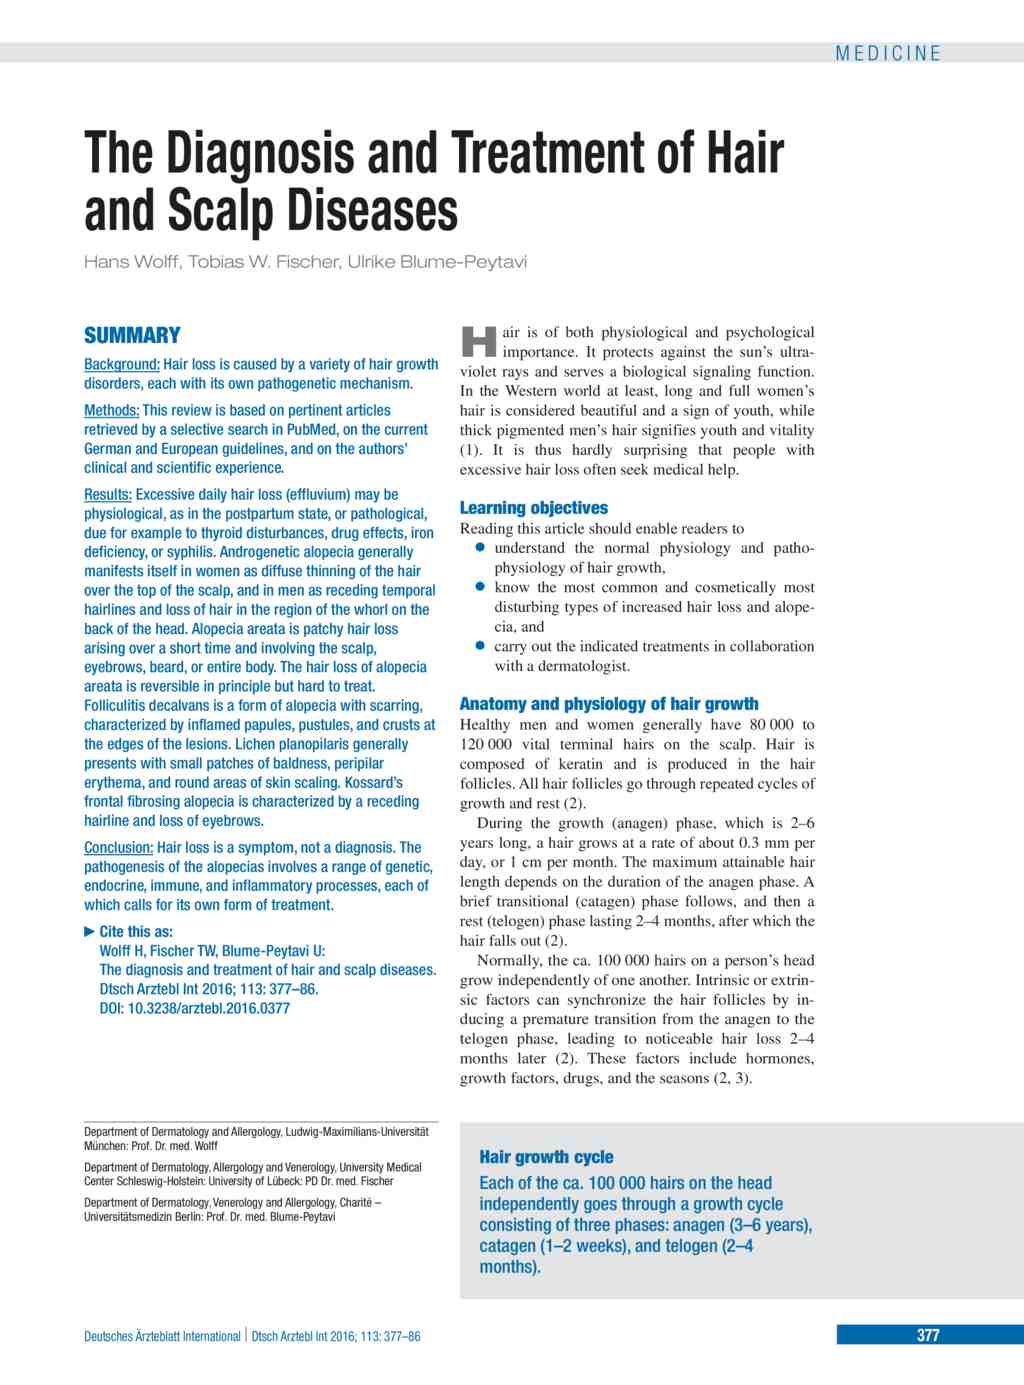 The Diagnosis and Treatment of Hair and Scalp Diseases (27 05 2016)